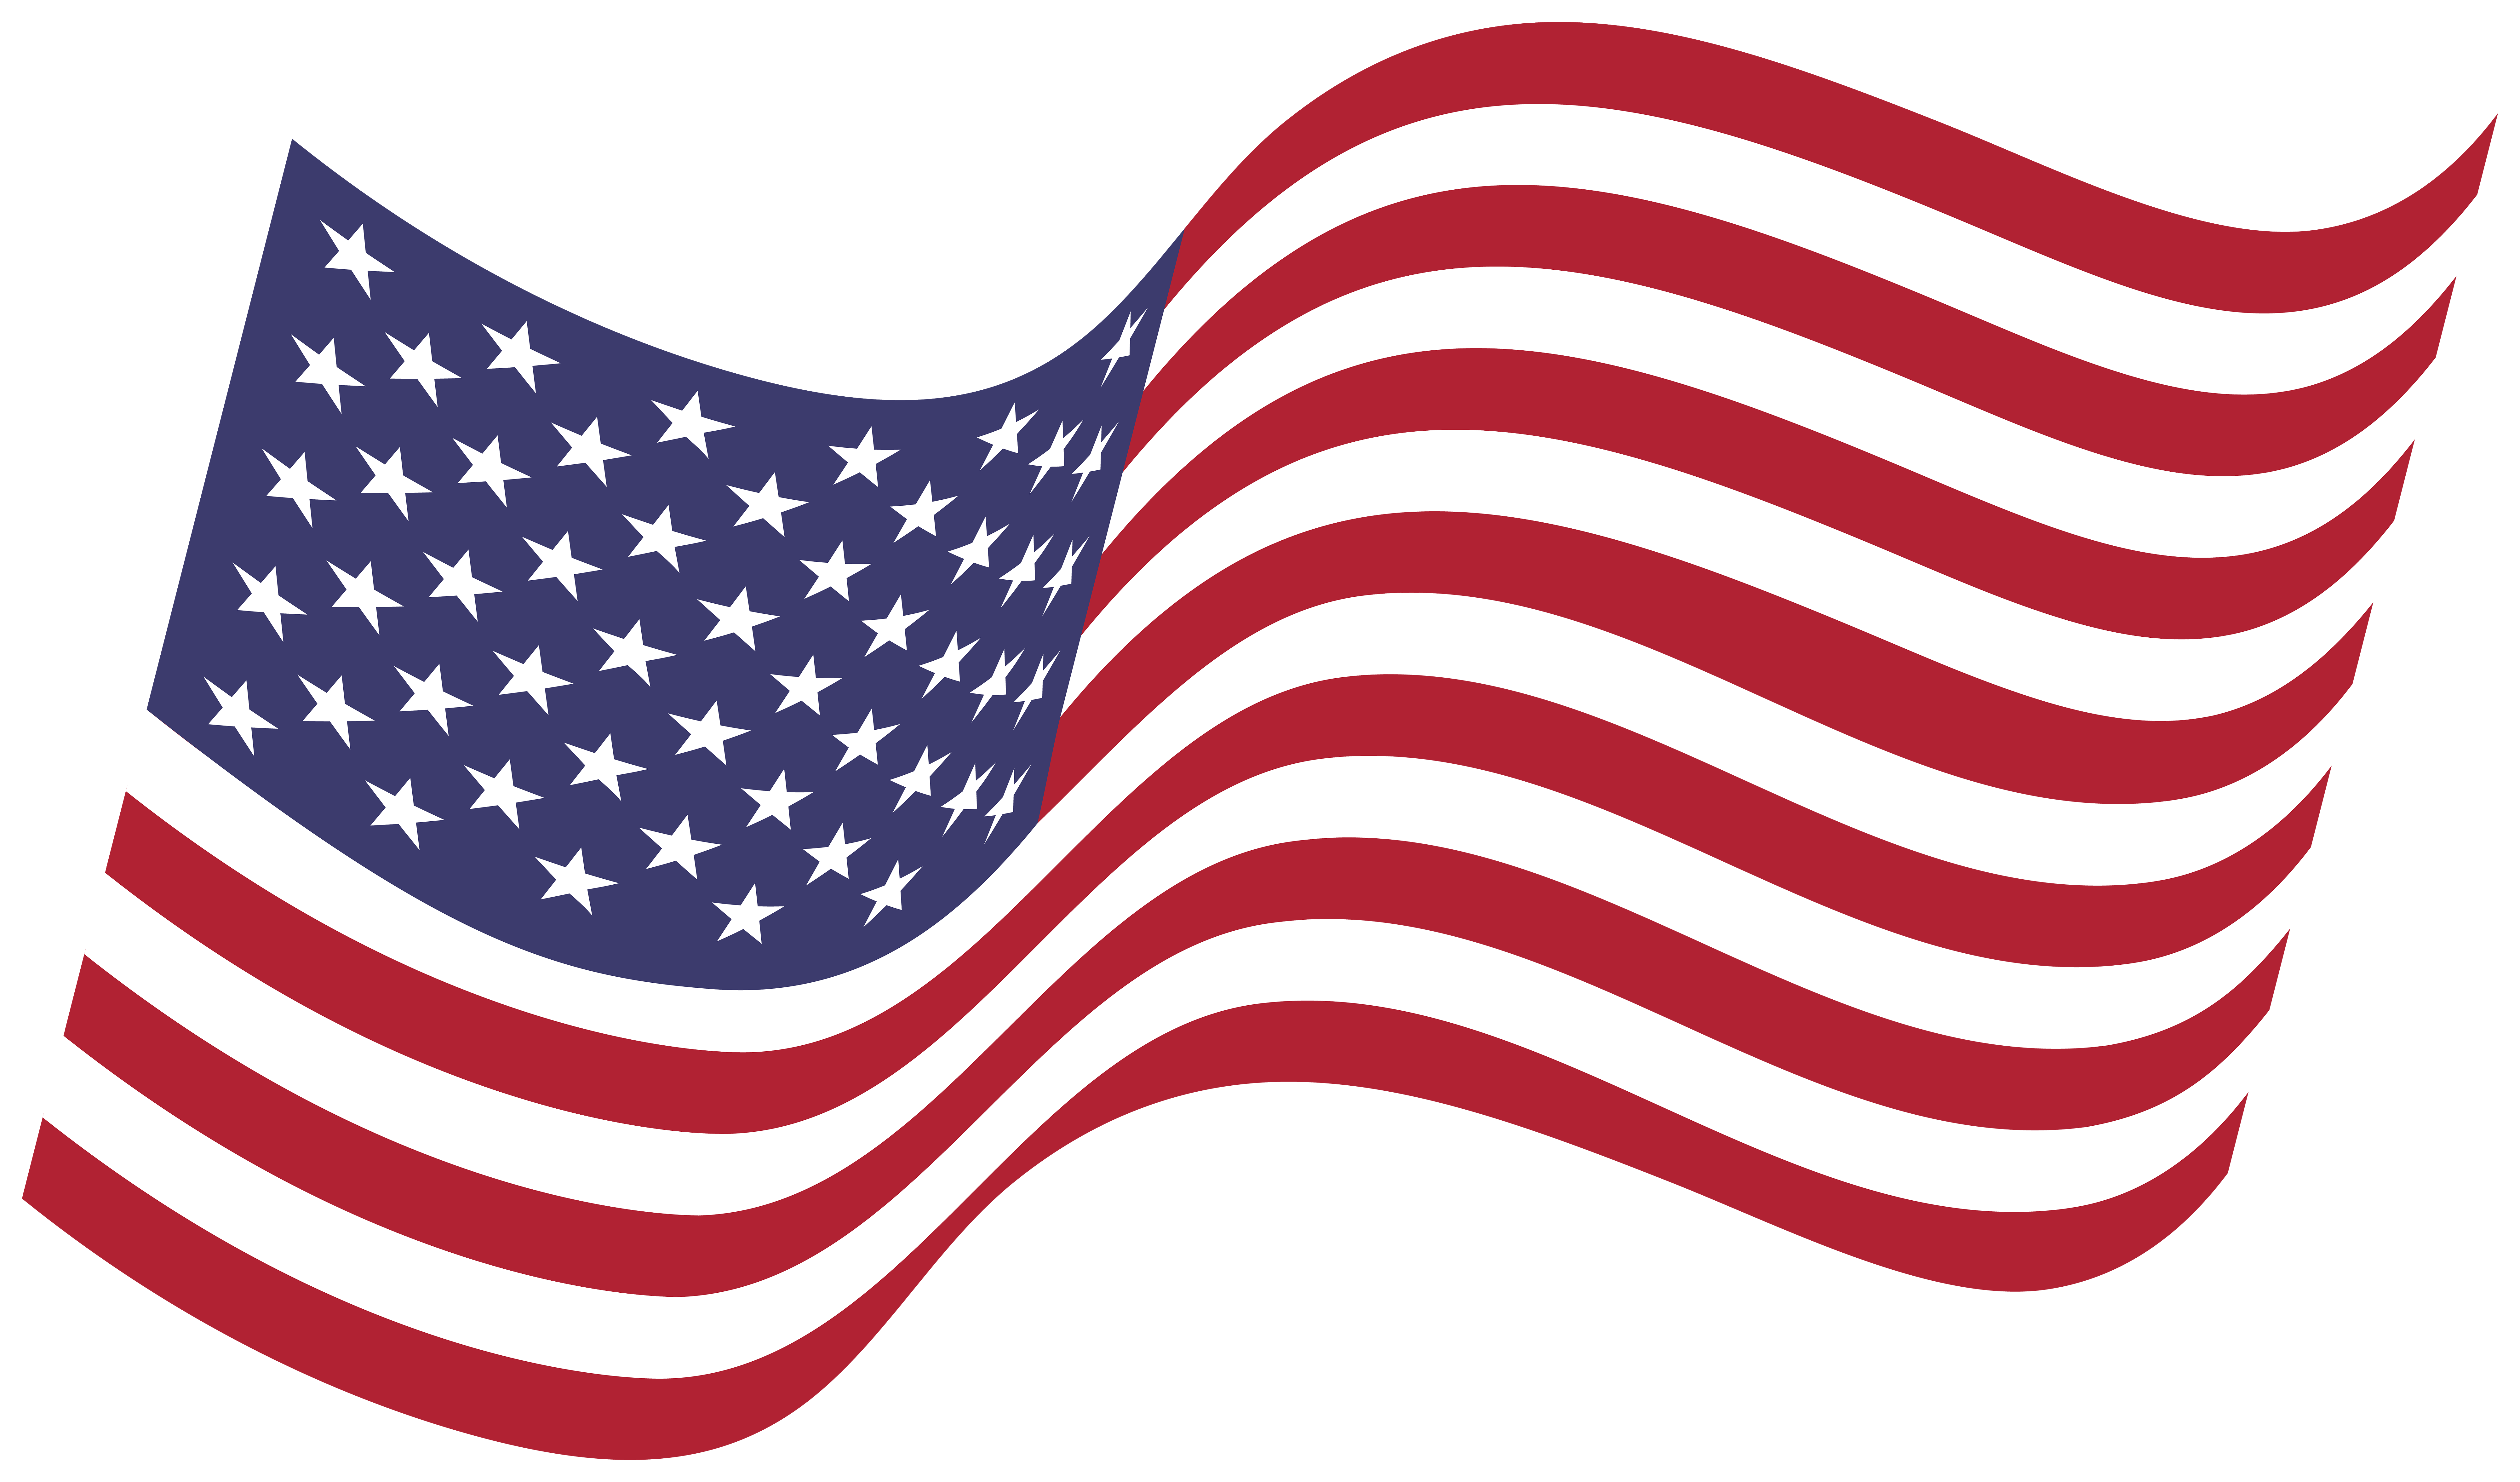 clipart waving flag 20 free Cliparts | Download images on ...